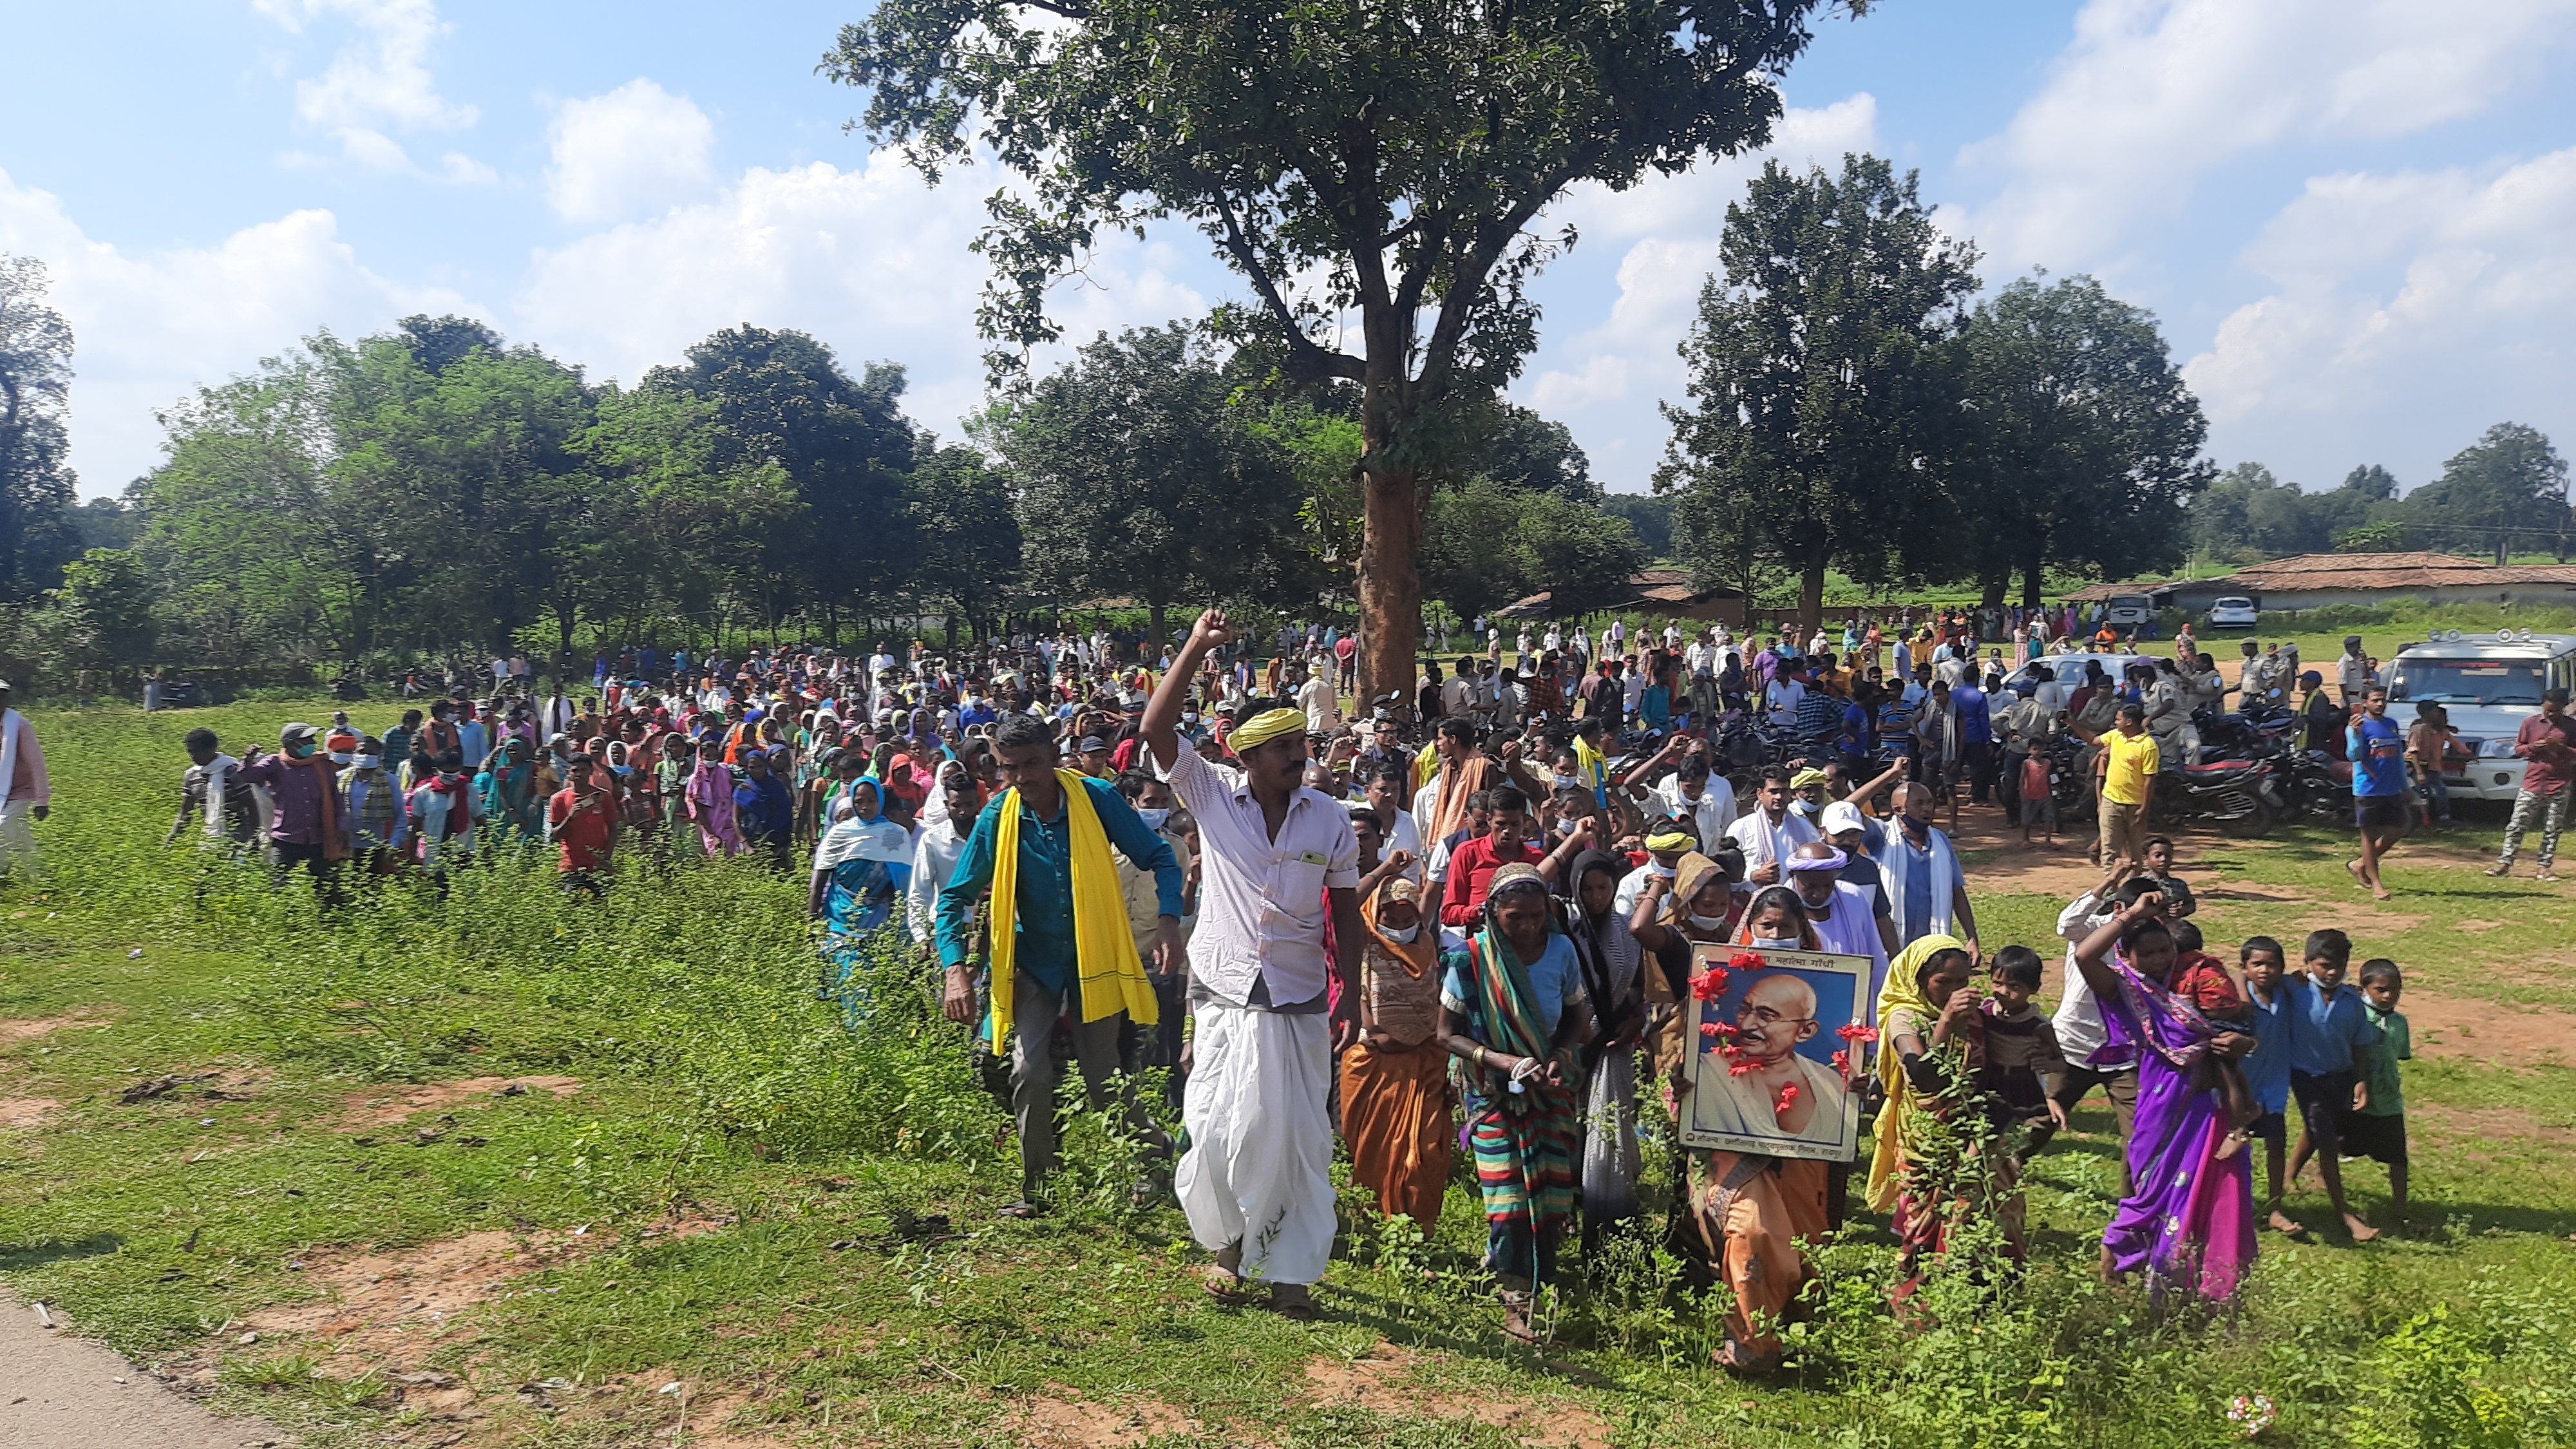 The gathering ended with an impromptu march around Fatehpur village, threatened by obliteration for an Adani-operated coal mine. Photo by a special correspondent.